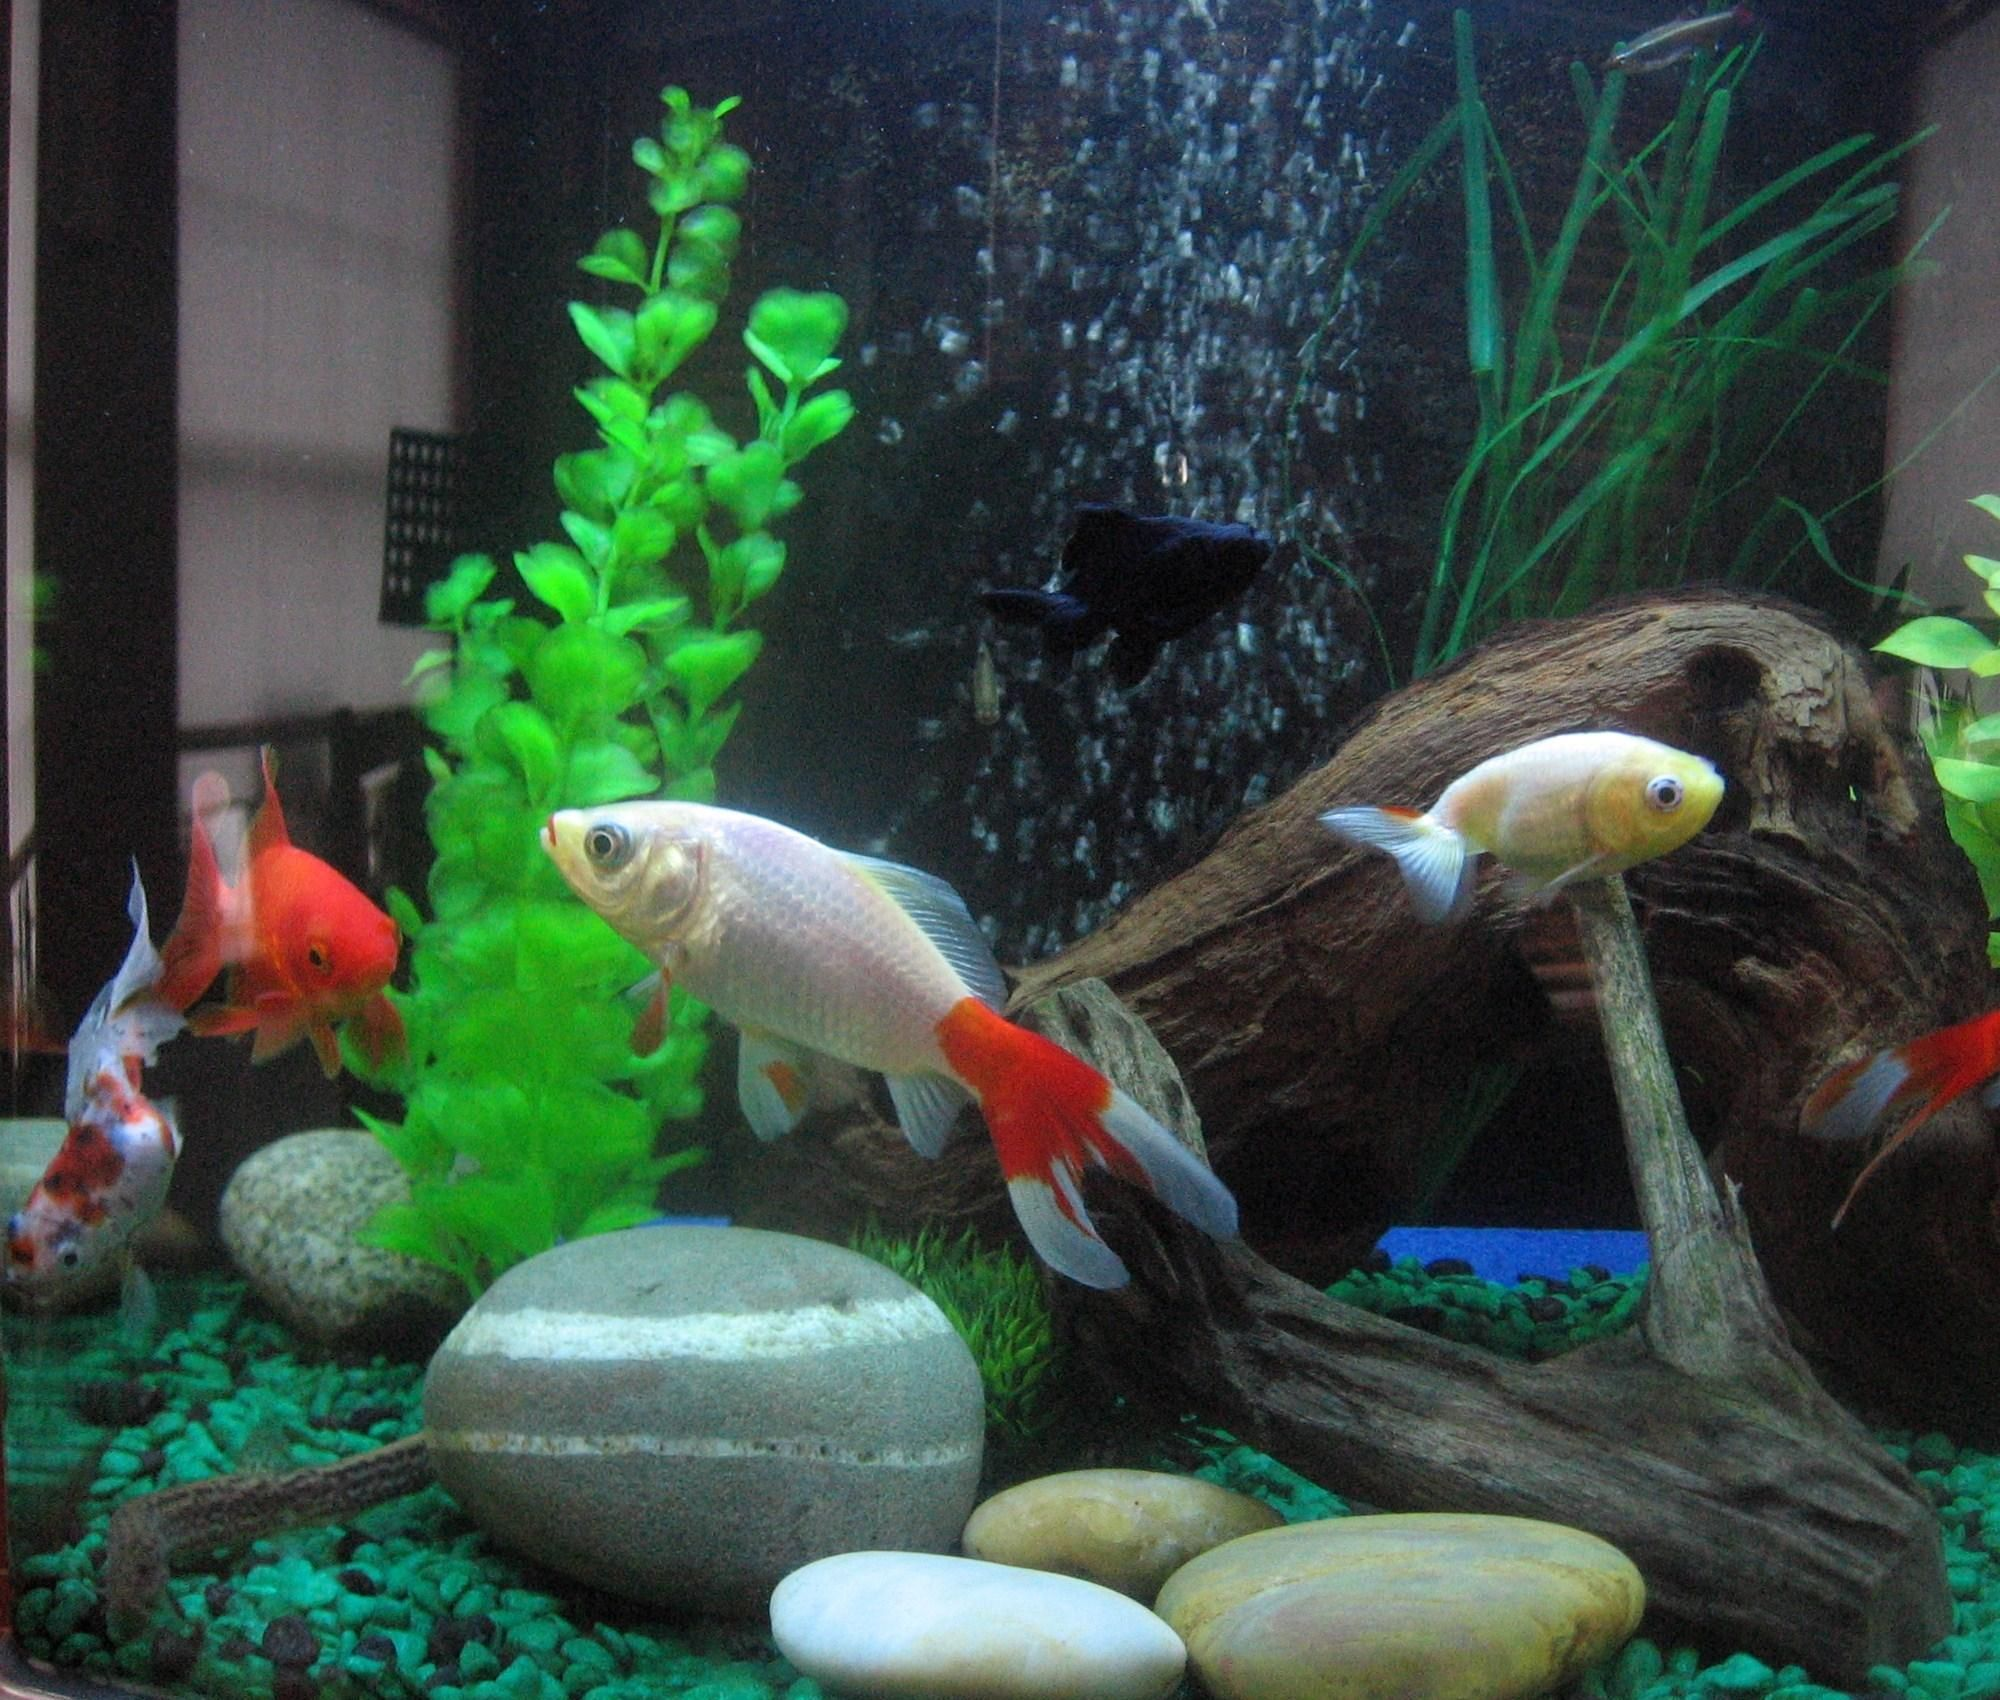 Tiernans2fishes avatar